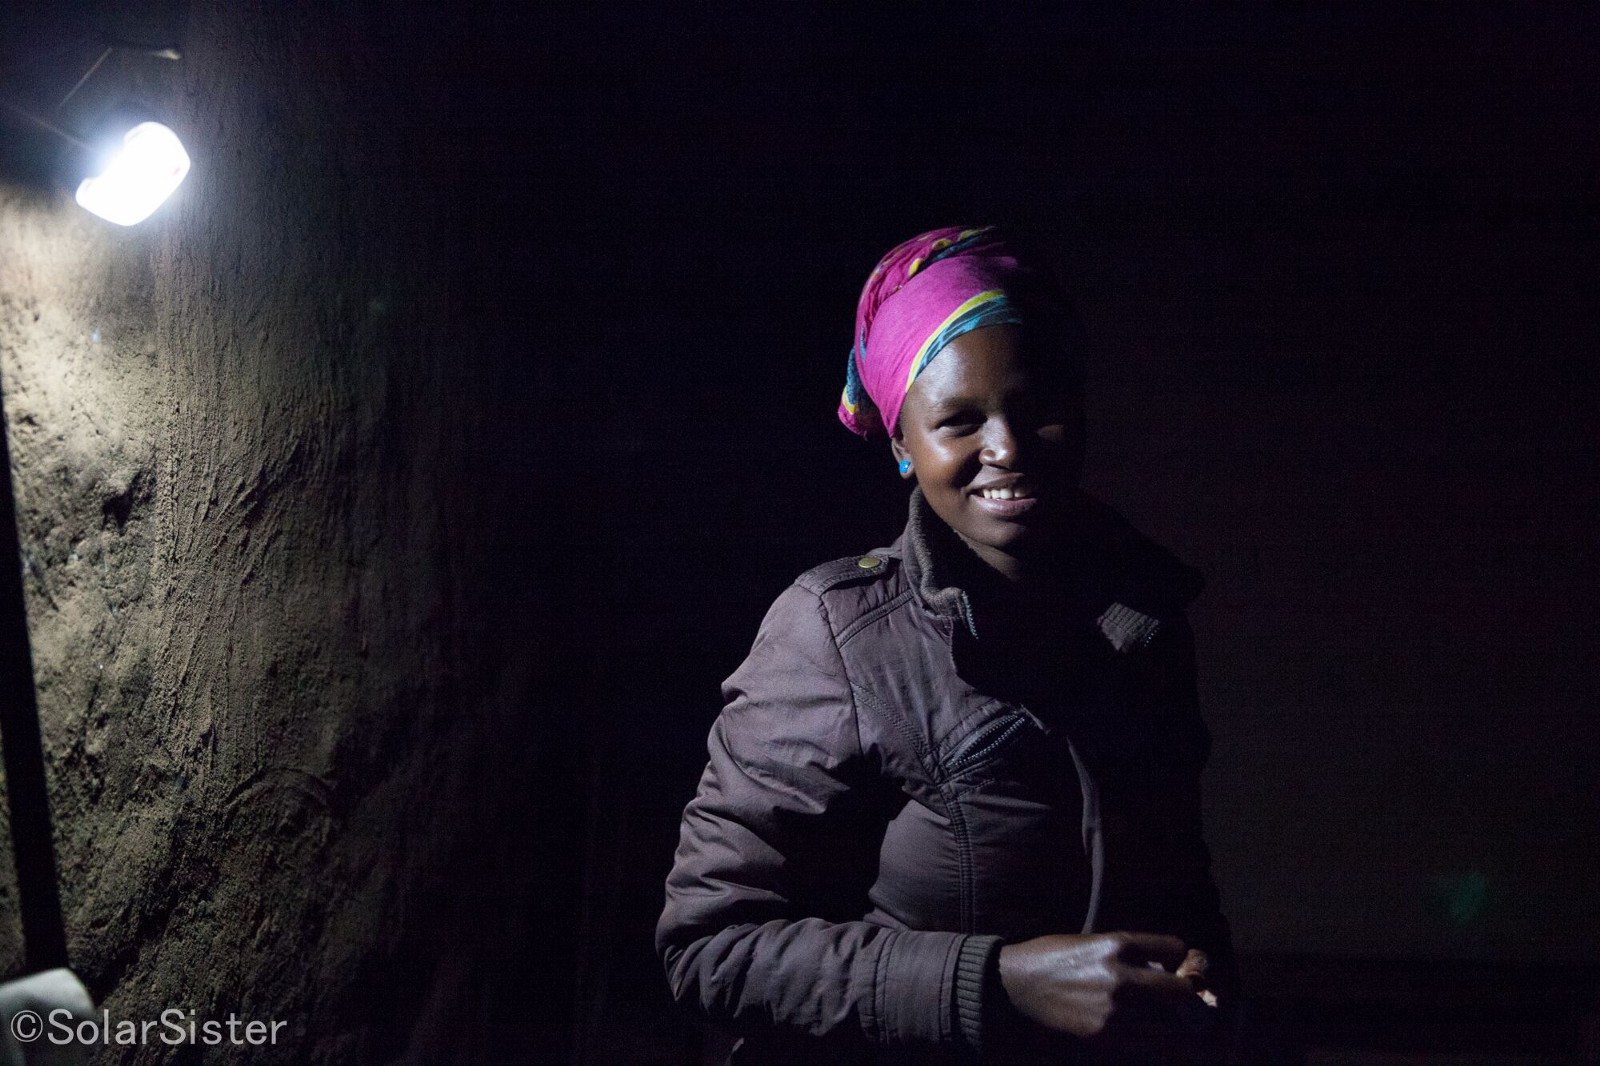 Prisca and her light